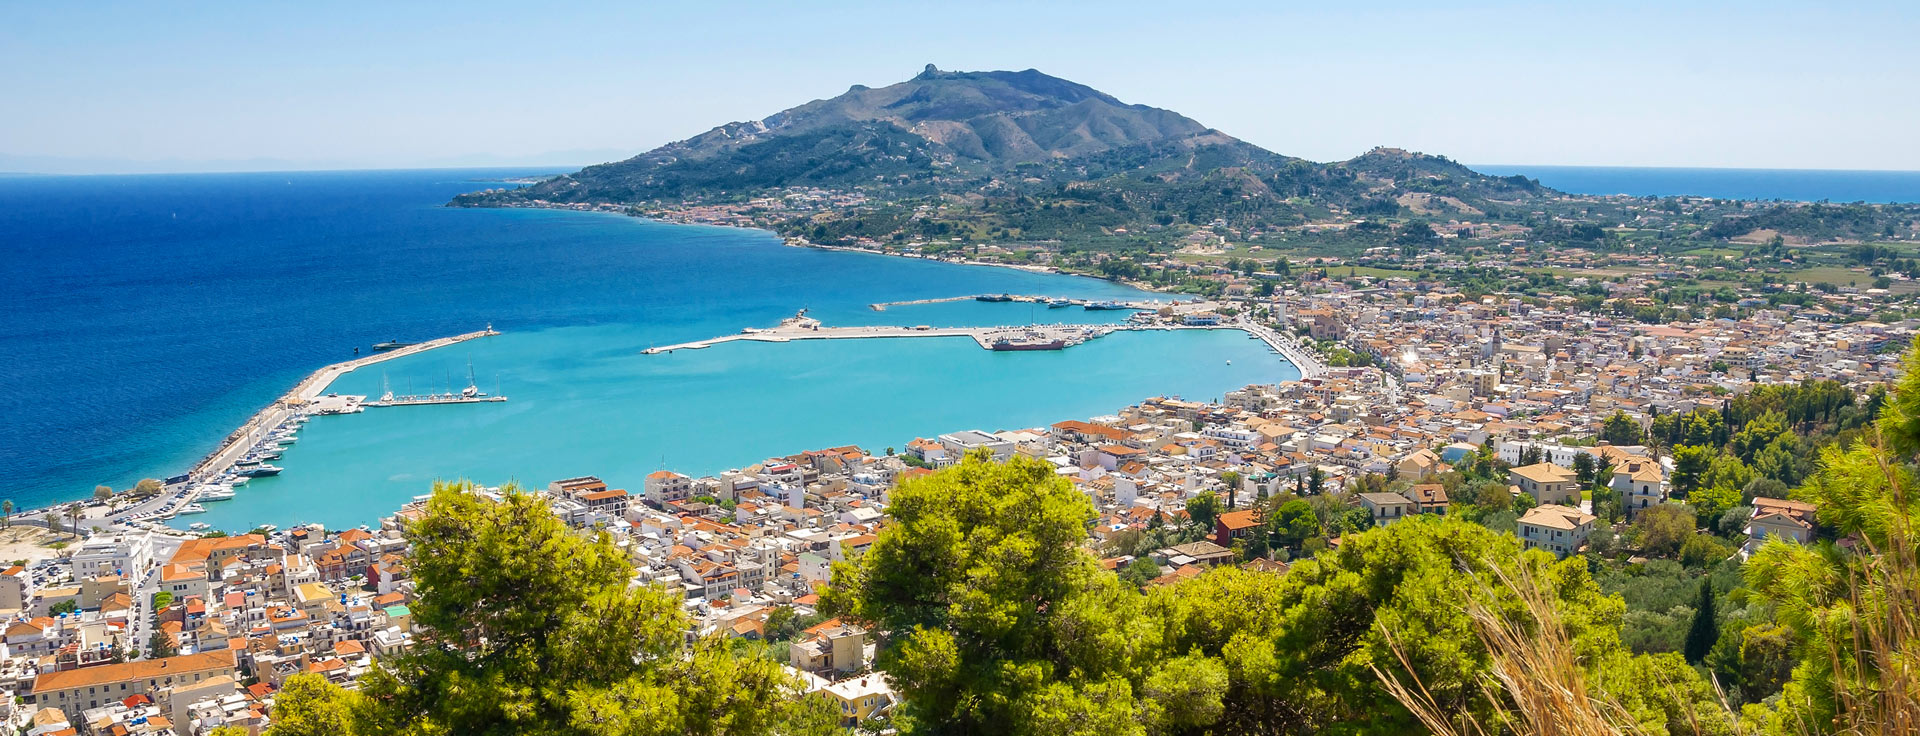 Panoramic View of Zakynthos town